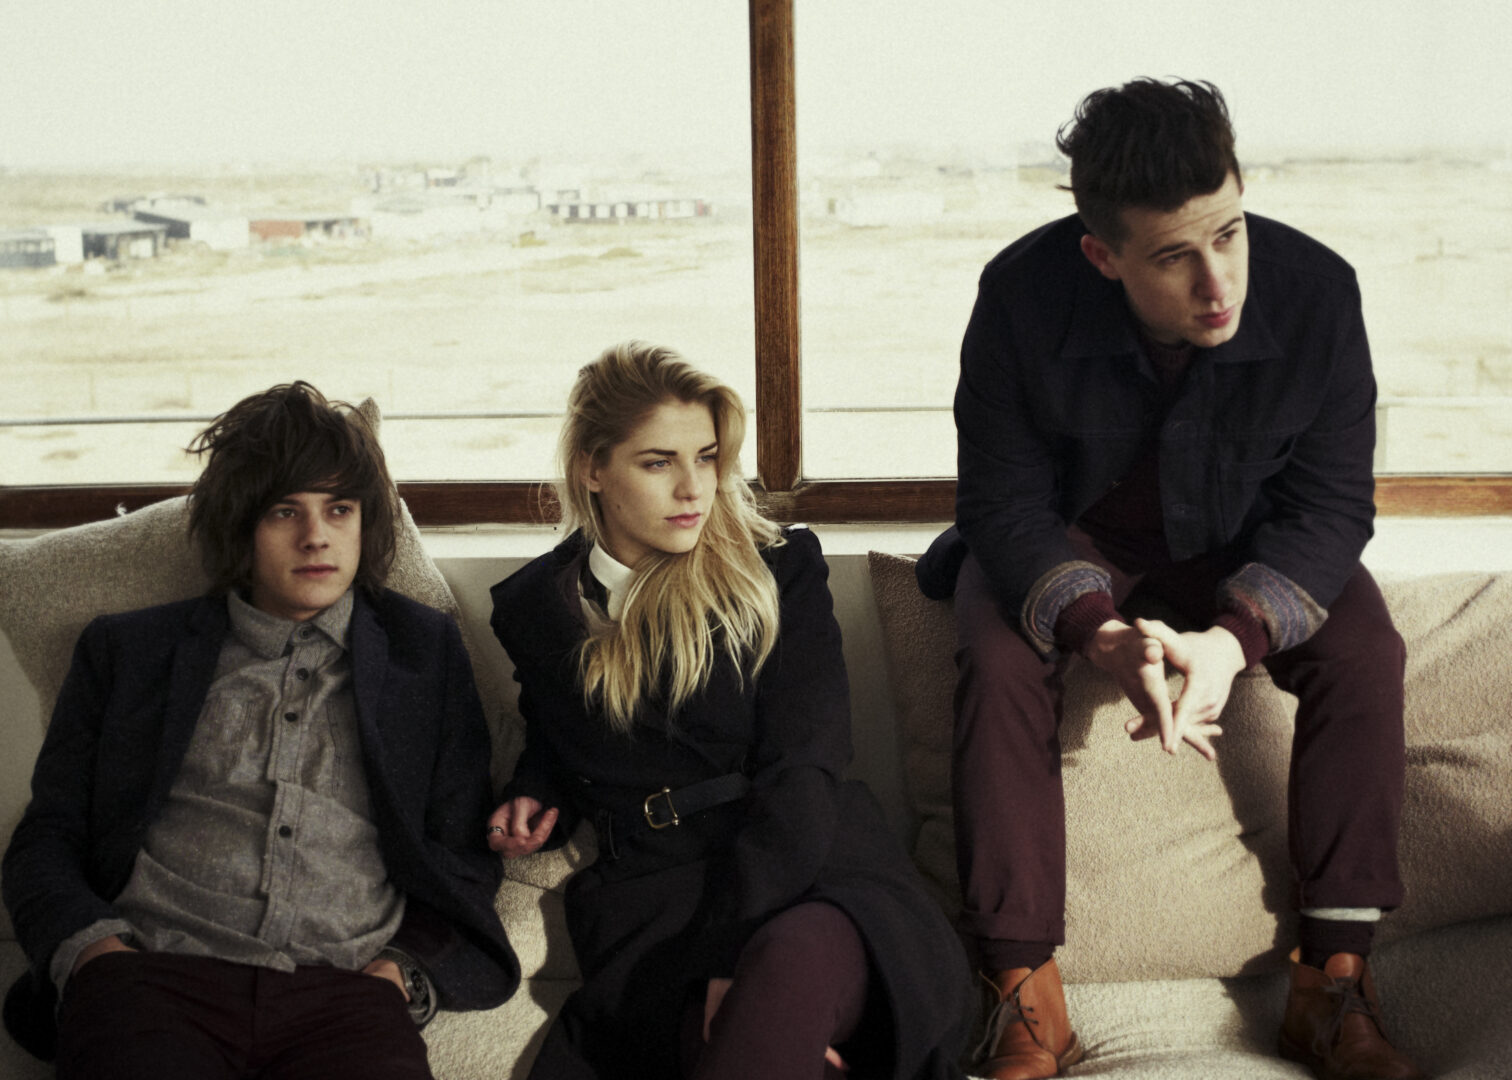 London Grammar Reschedule November North American Tour